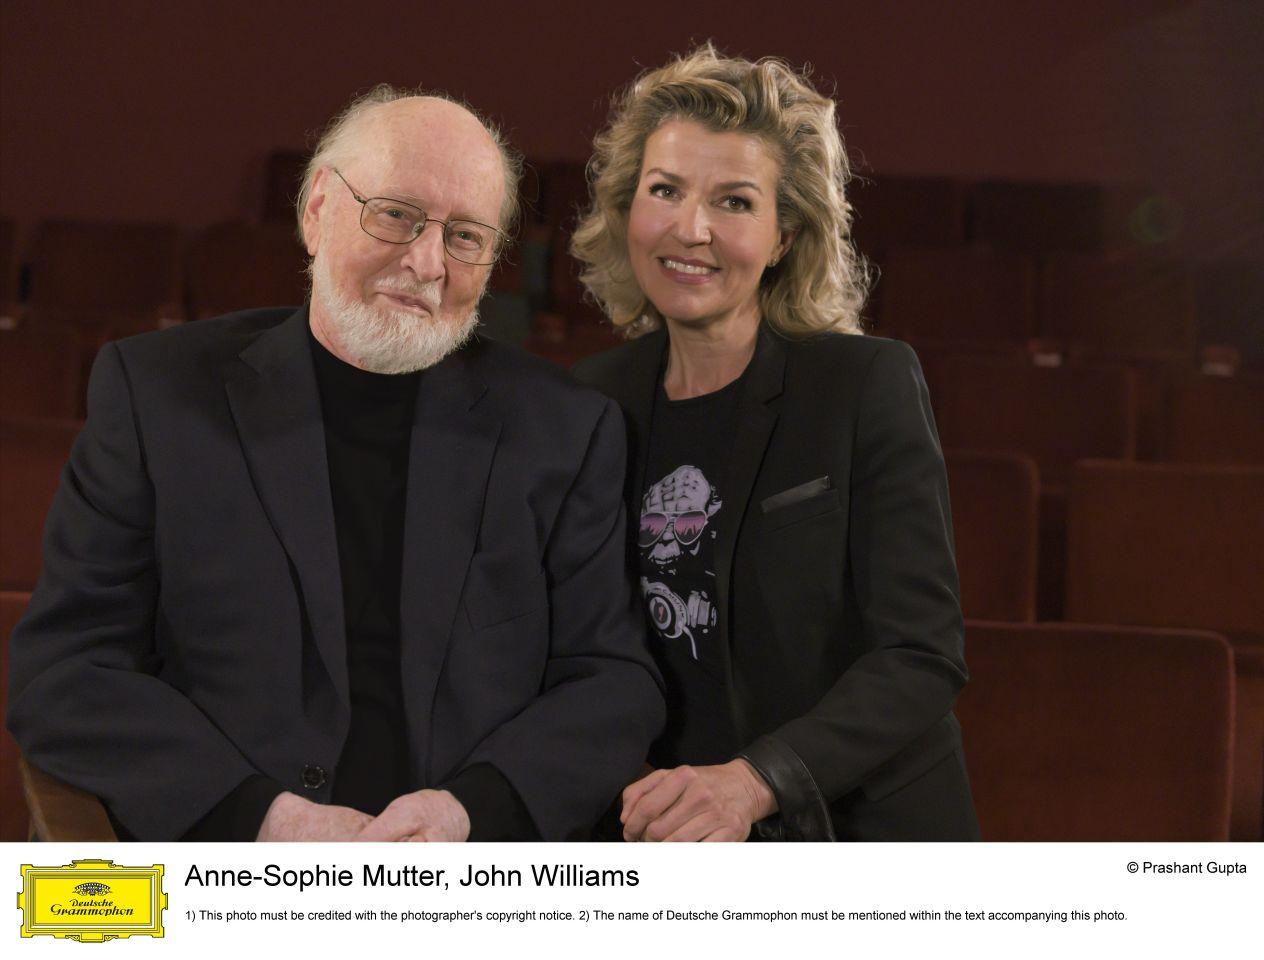 Anne-Sophie Mutter, John Williams